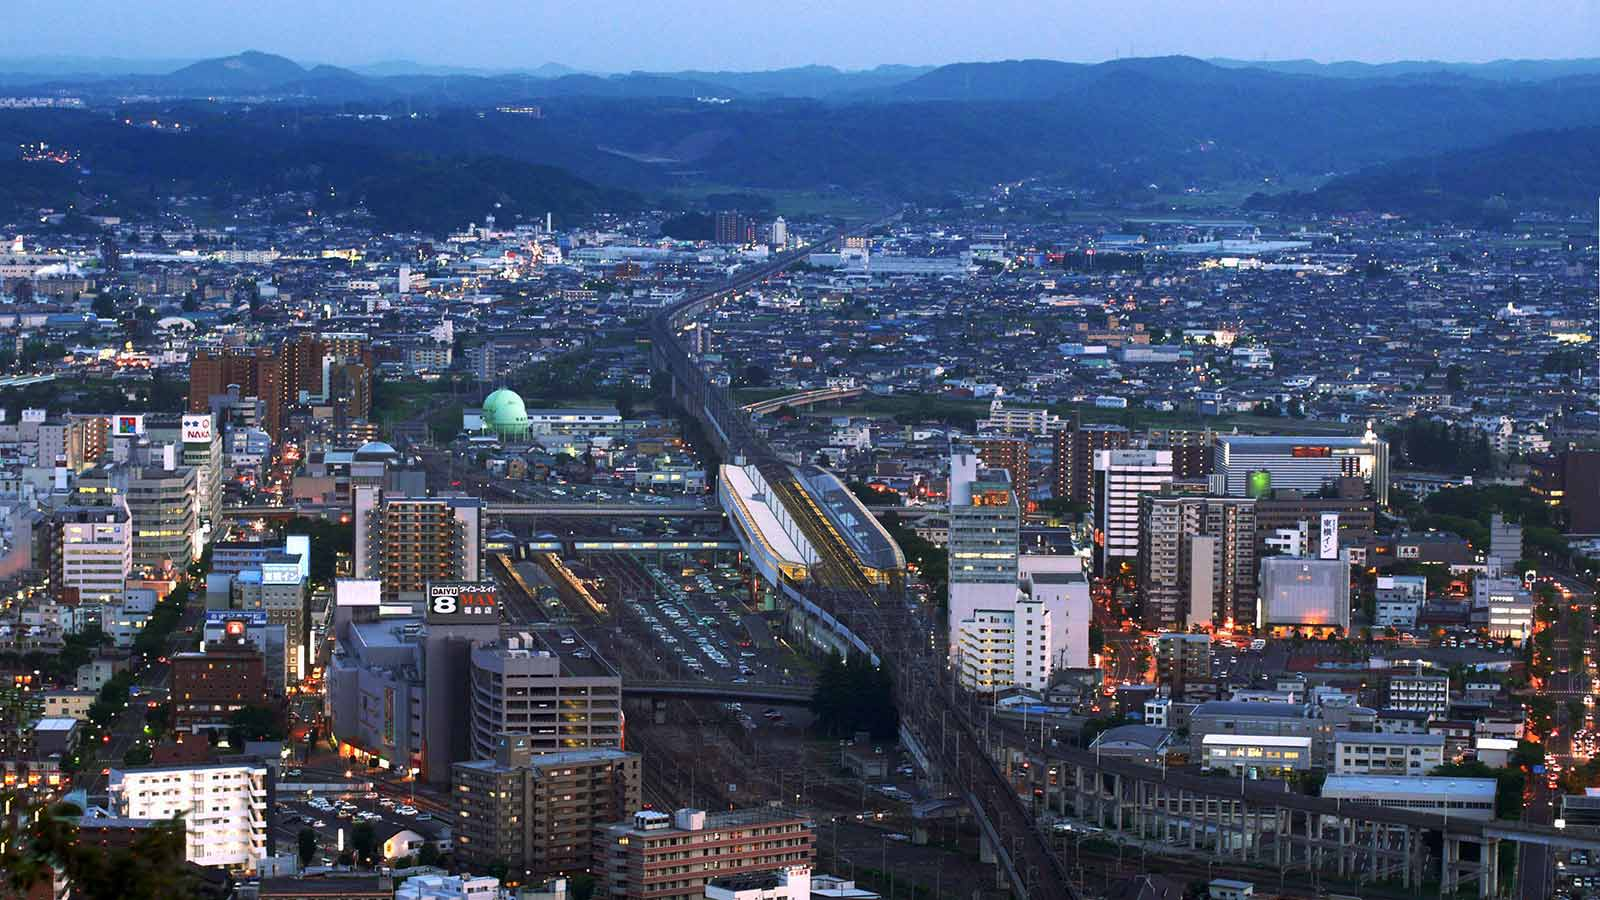 Fukashima City, Japan. By Purplepumpkins (Own work), via Wikimedia Commons